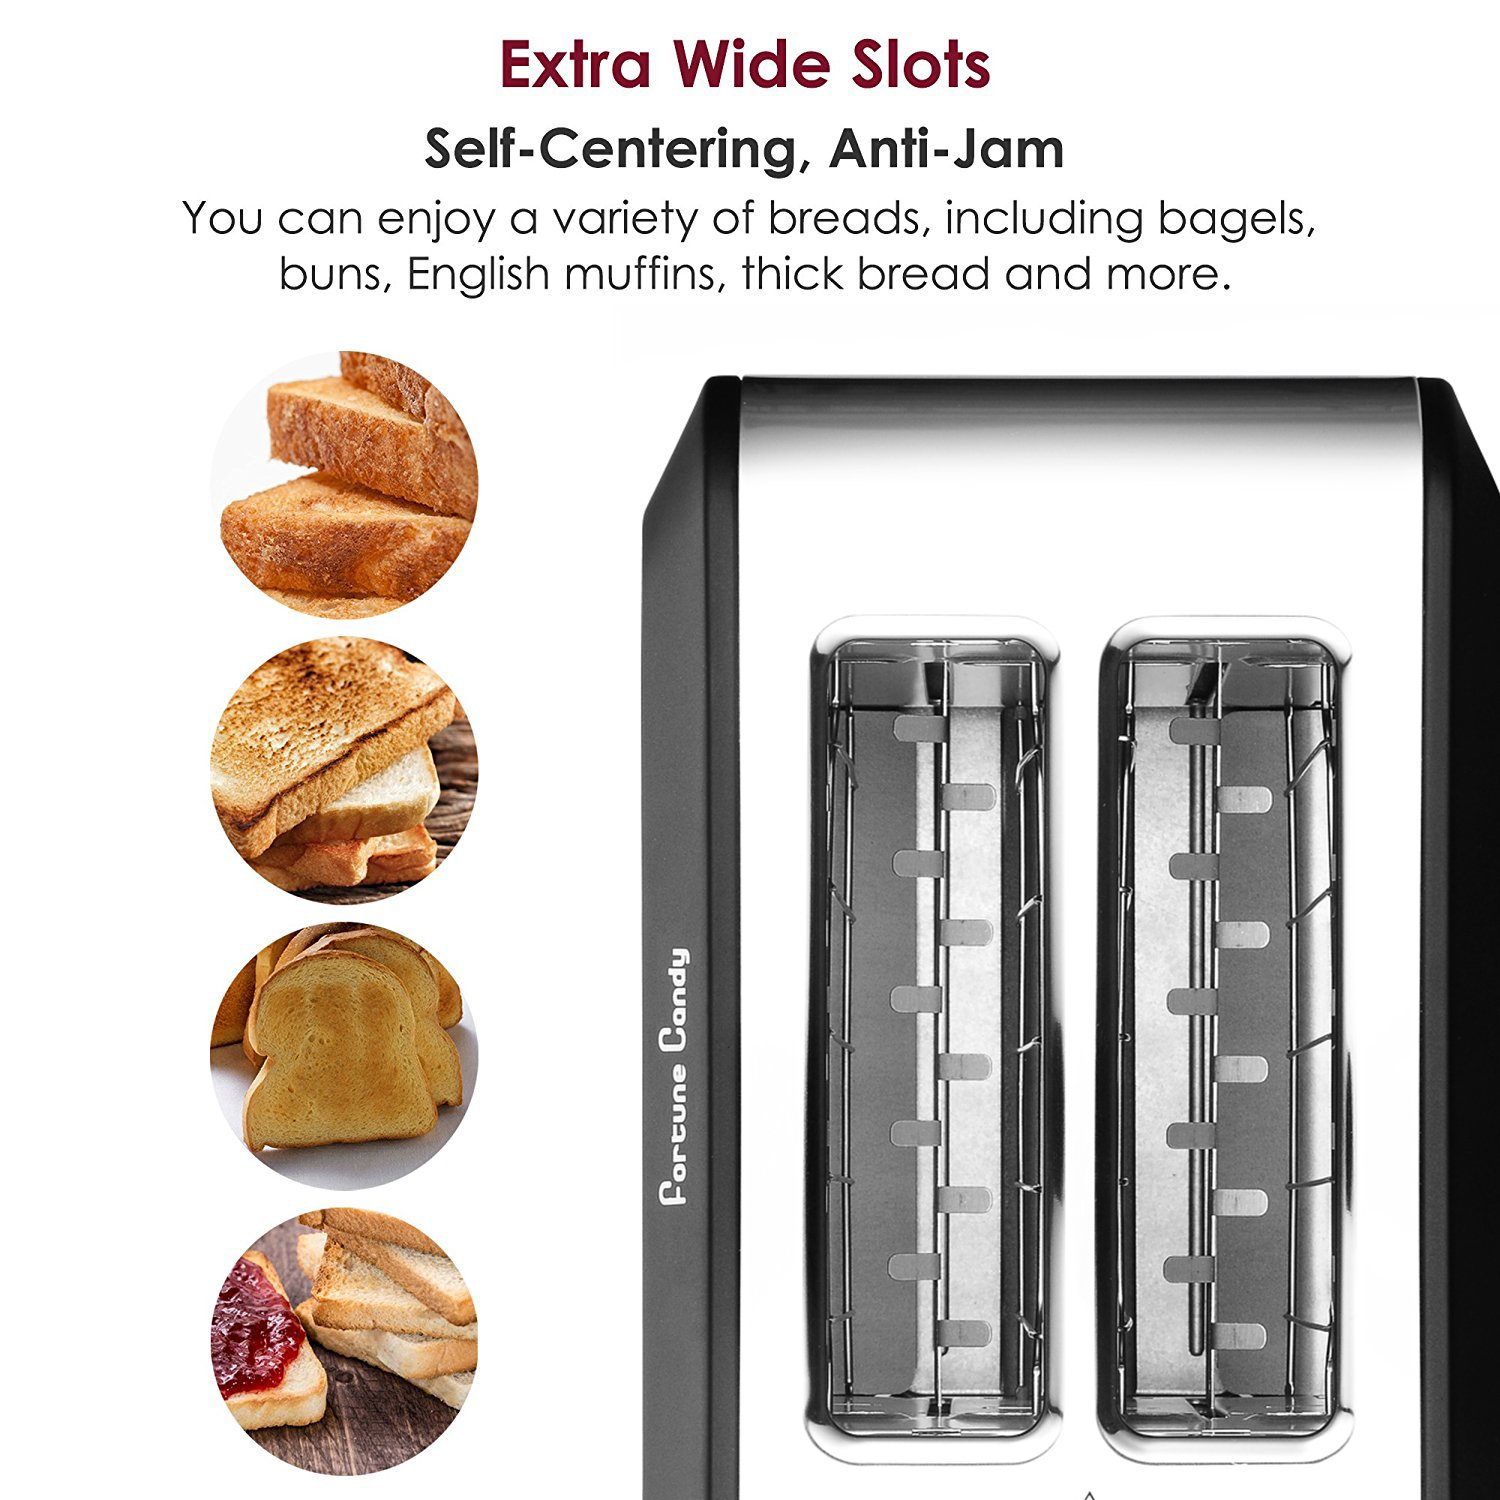 Fortune Candy Stainless Steel 2 Slices toaster, black toaster With Extra Wide Slot, 7-Shade Control by Fortune Candy (Image #2)